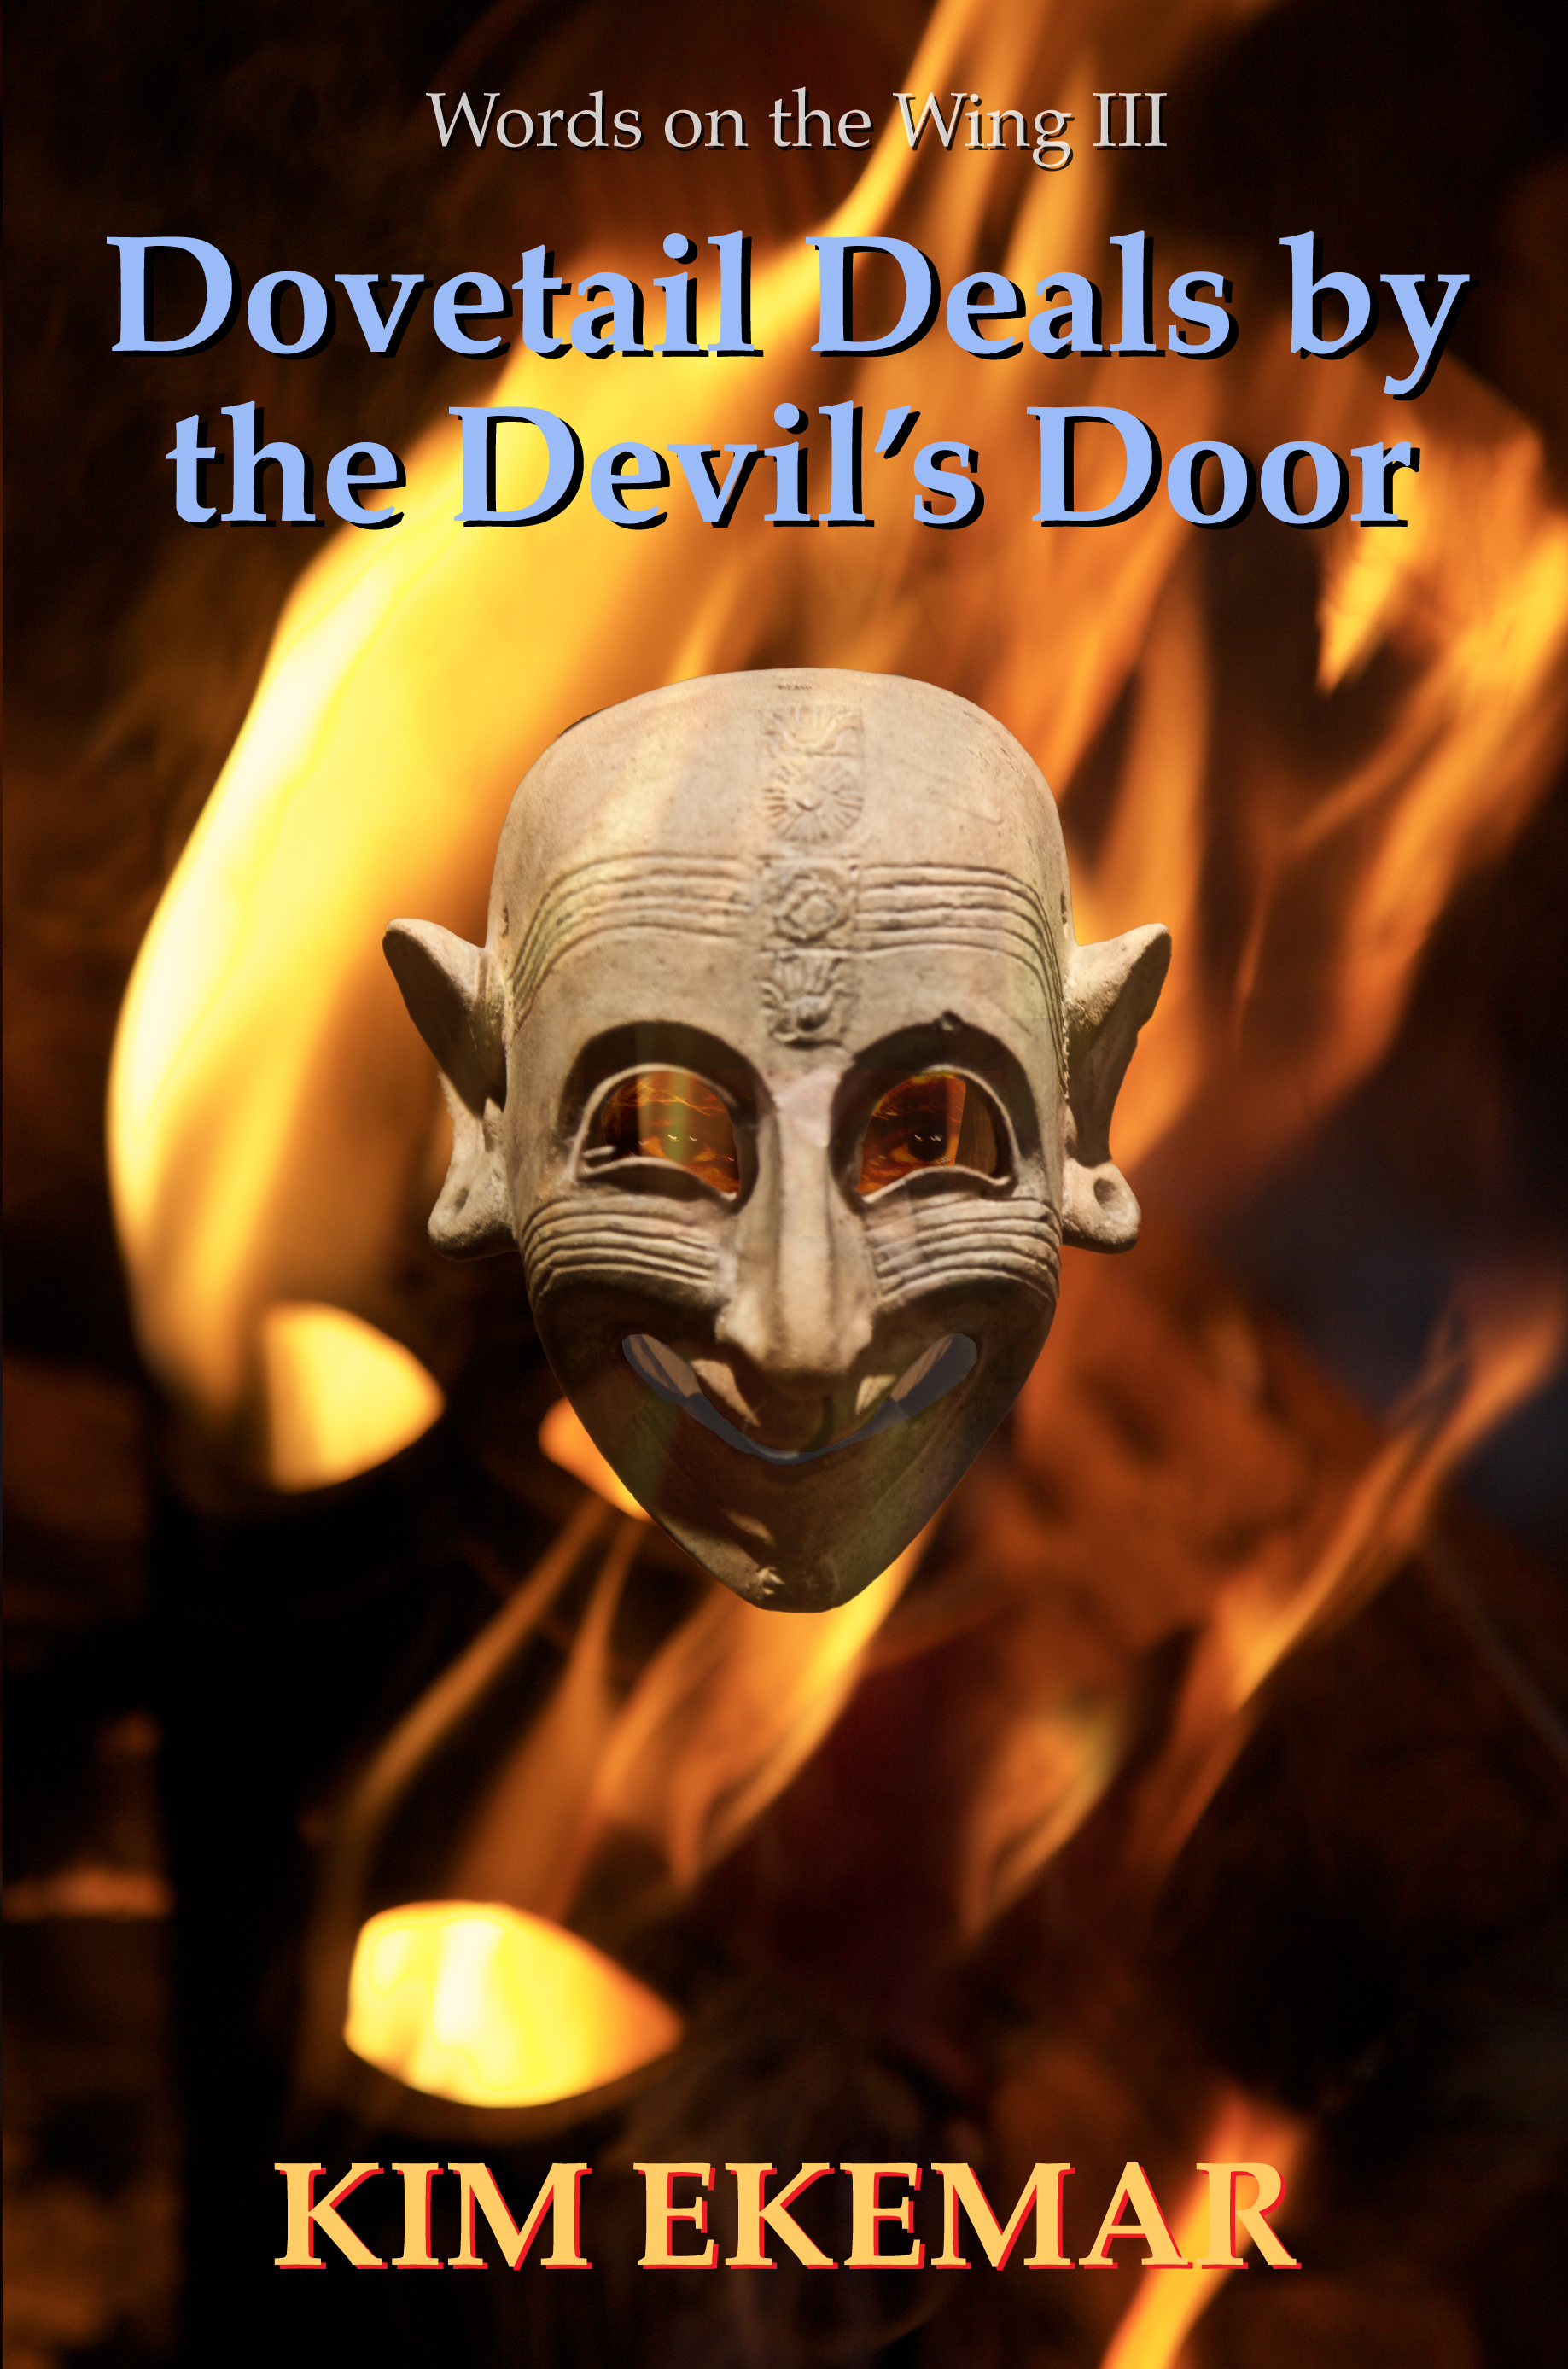 Dovetail Deals by the Devil's Door